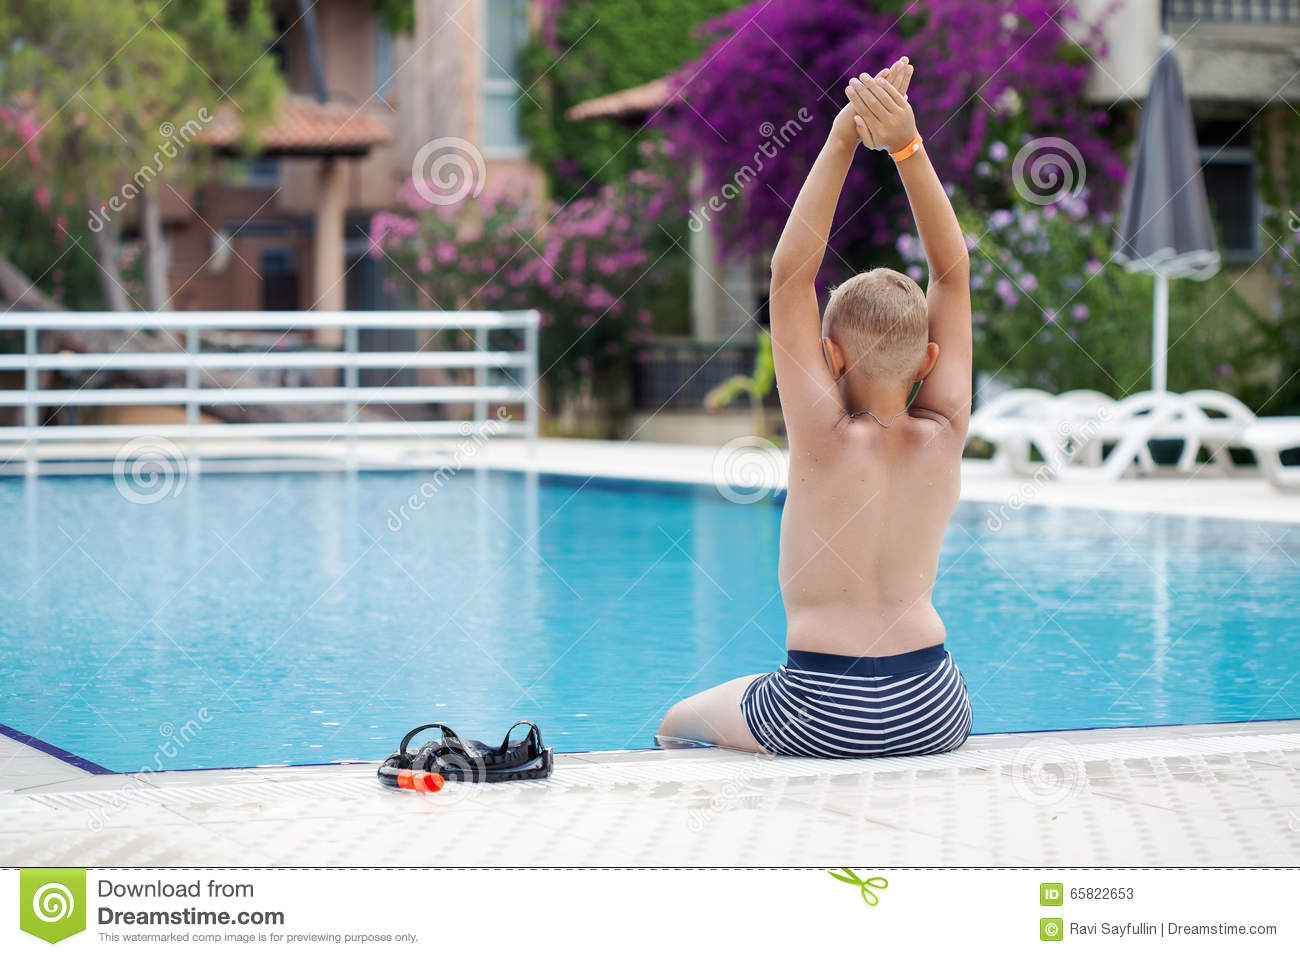 A cute blonde boy learning to dive